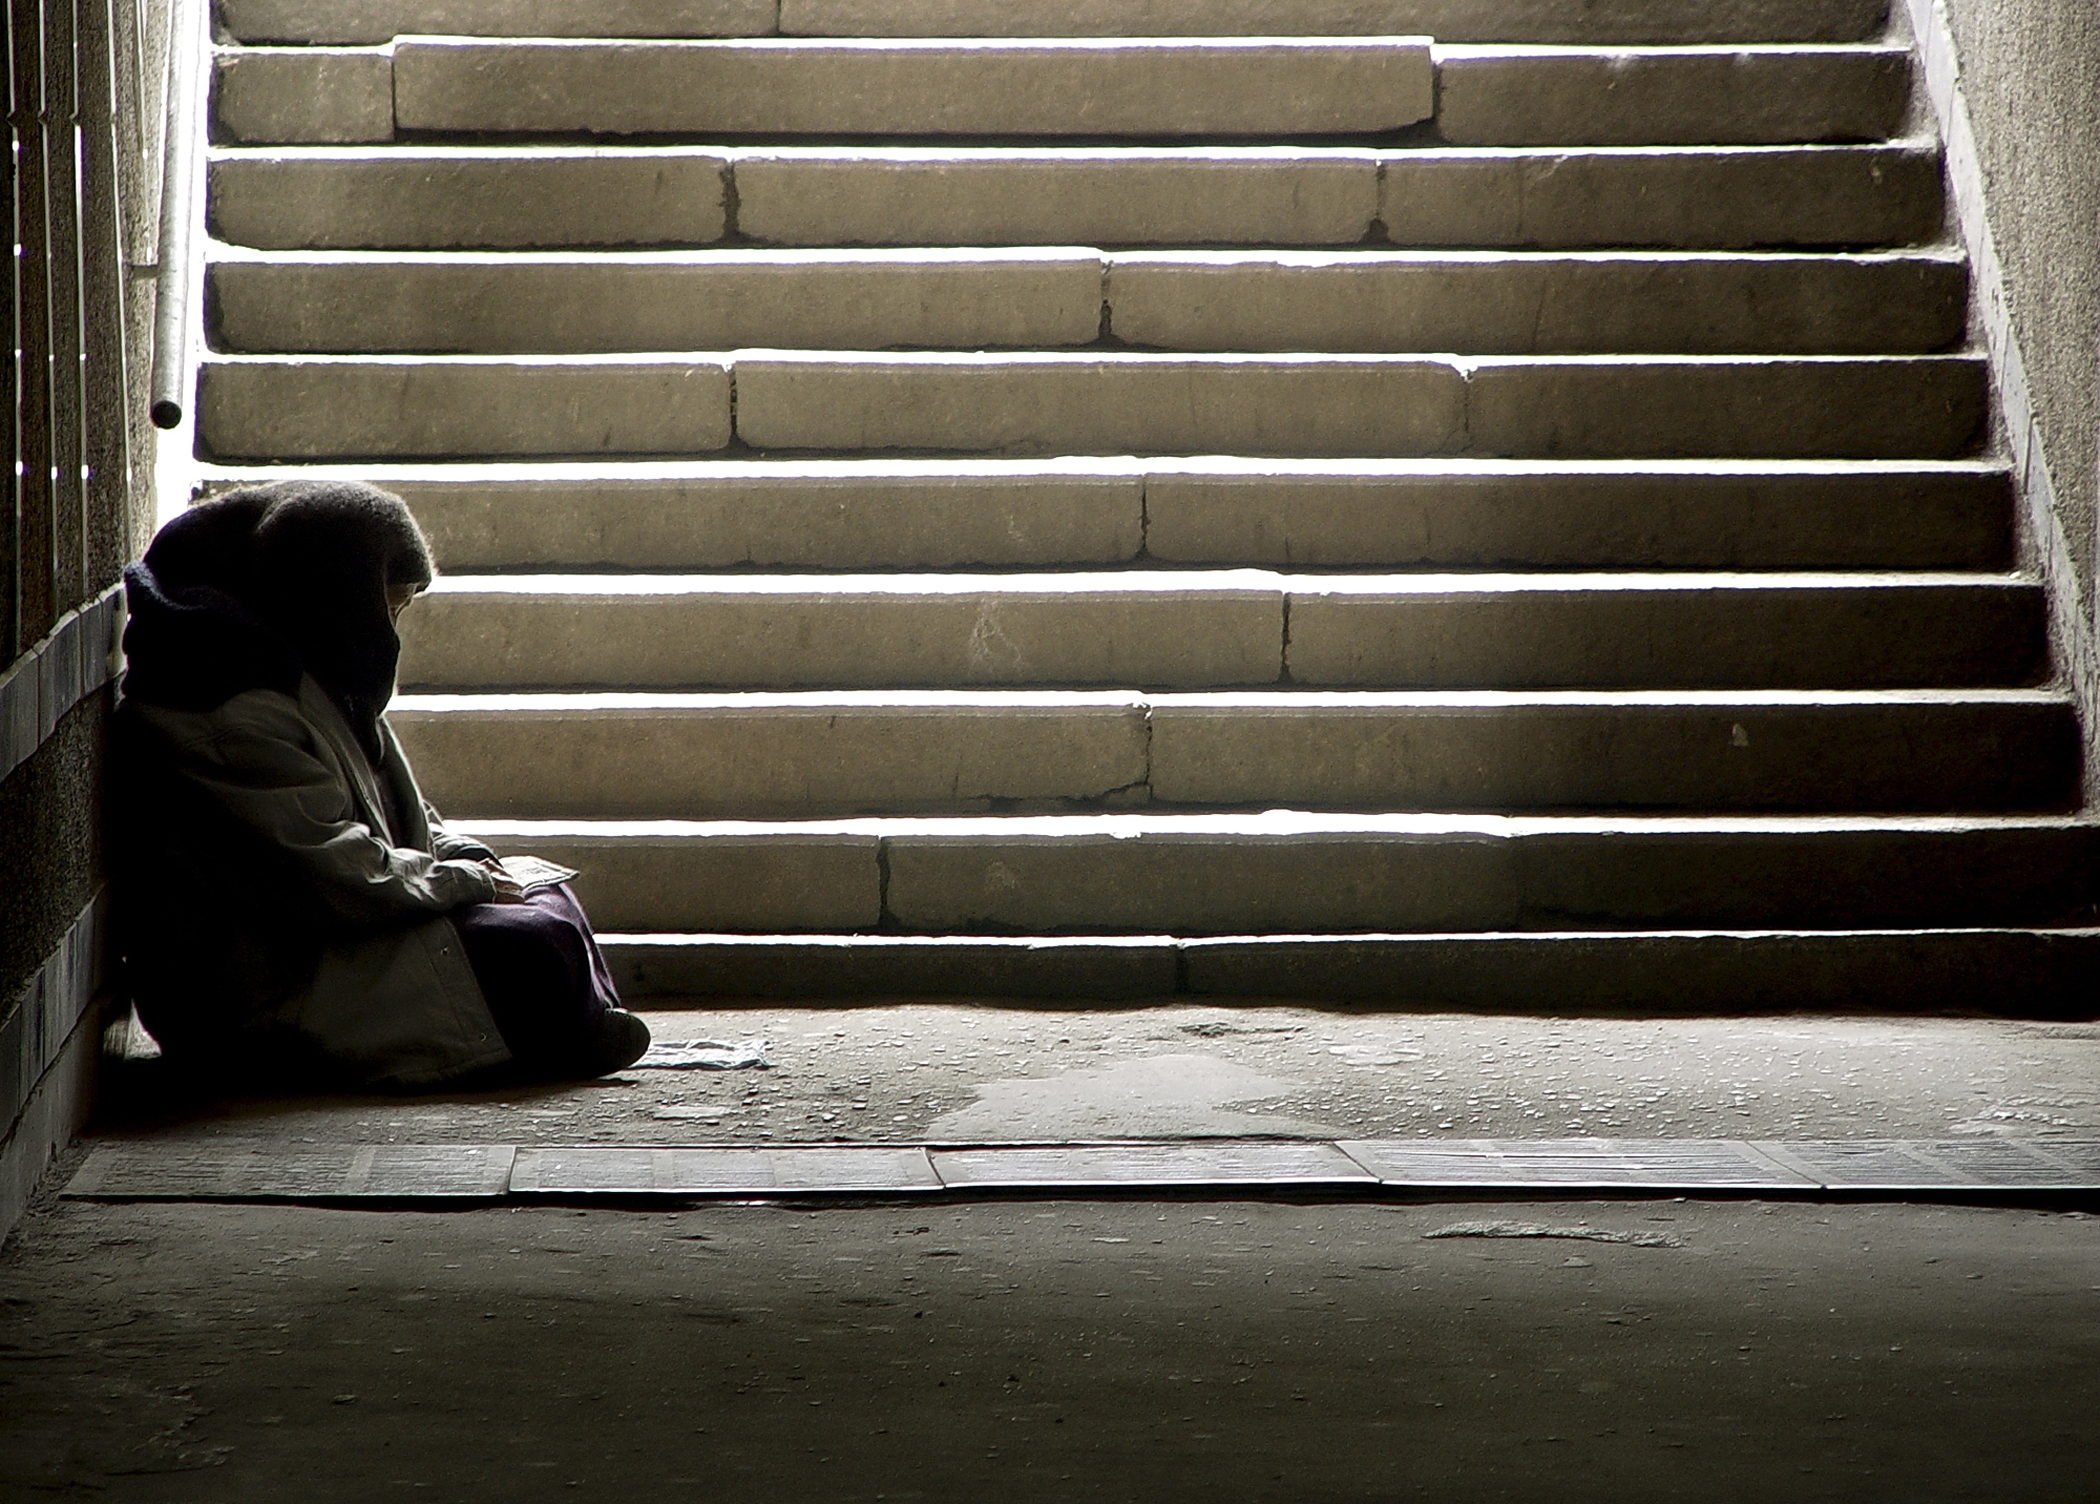 Number of people sleeping rough in Colchester more than doubles in three years